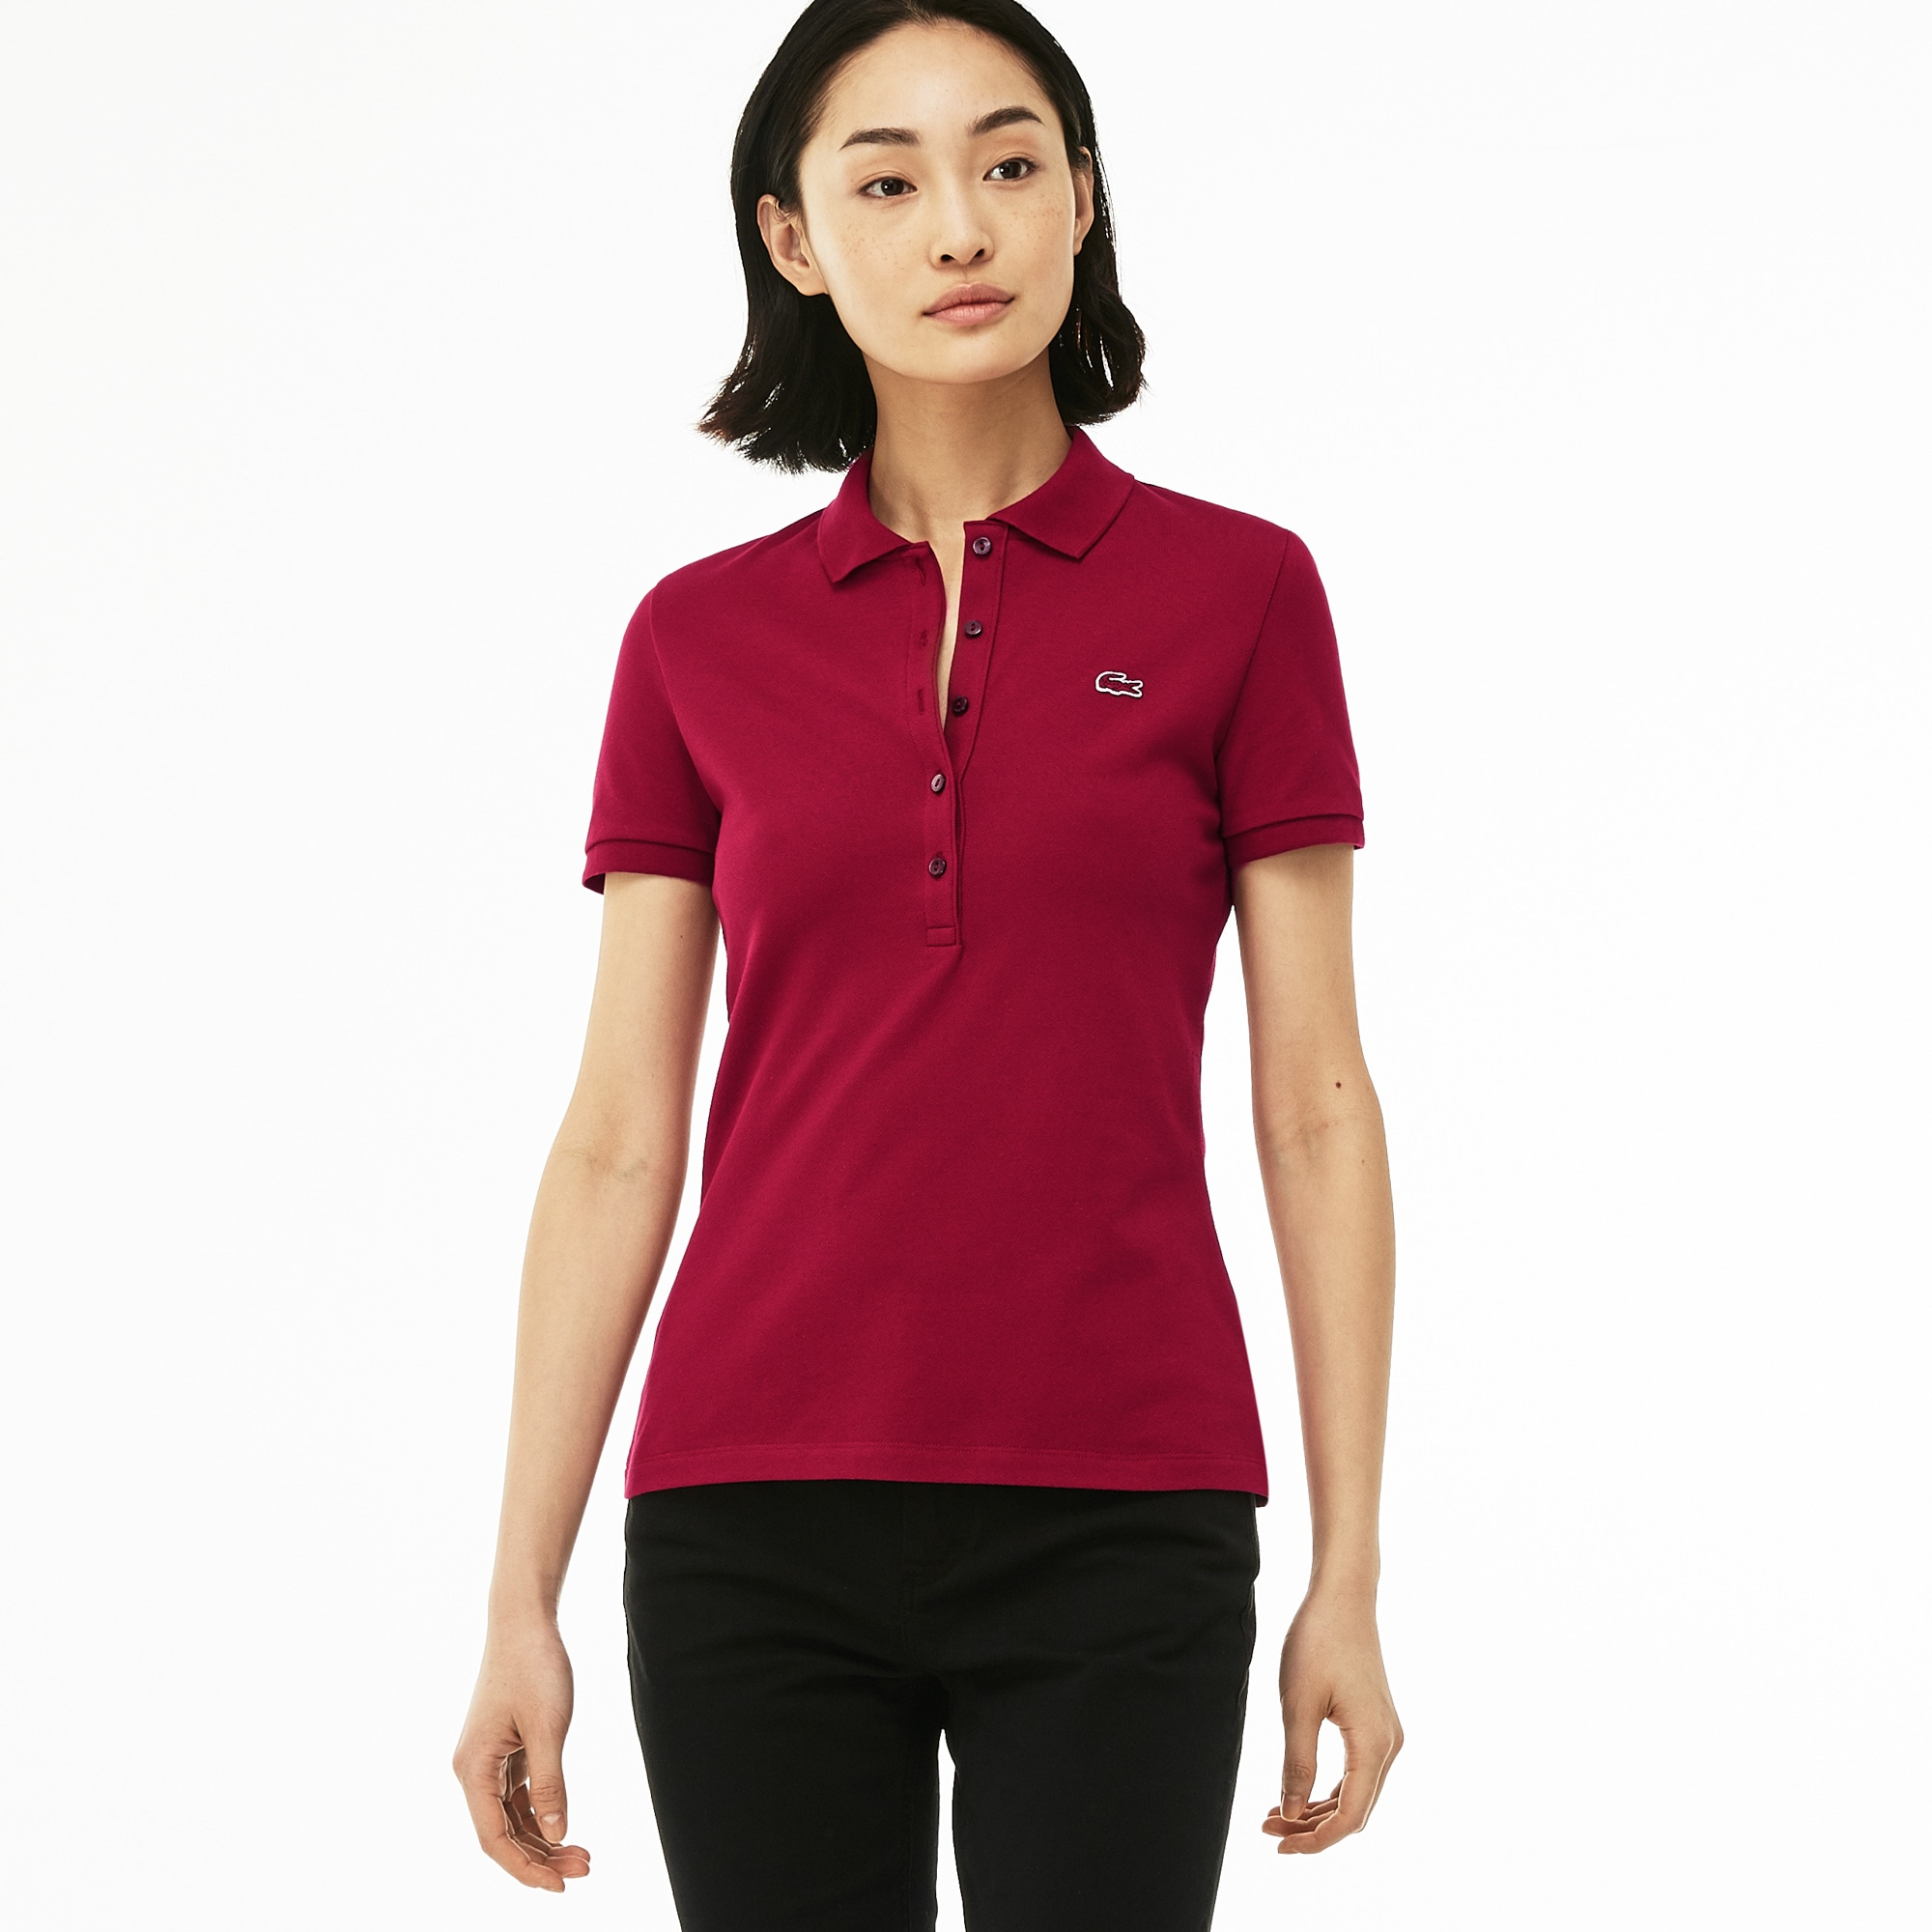 Women's Lacoste Slim Fit Stretch Mini Cotton Piqué Polo